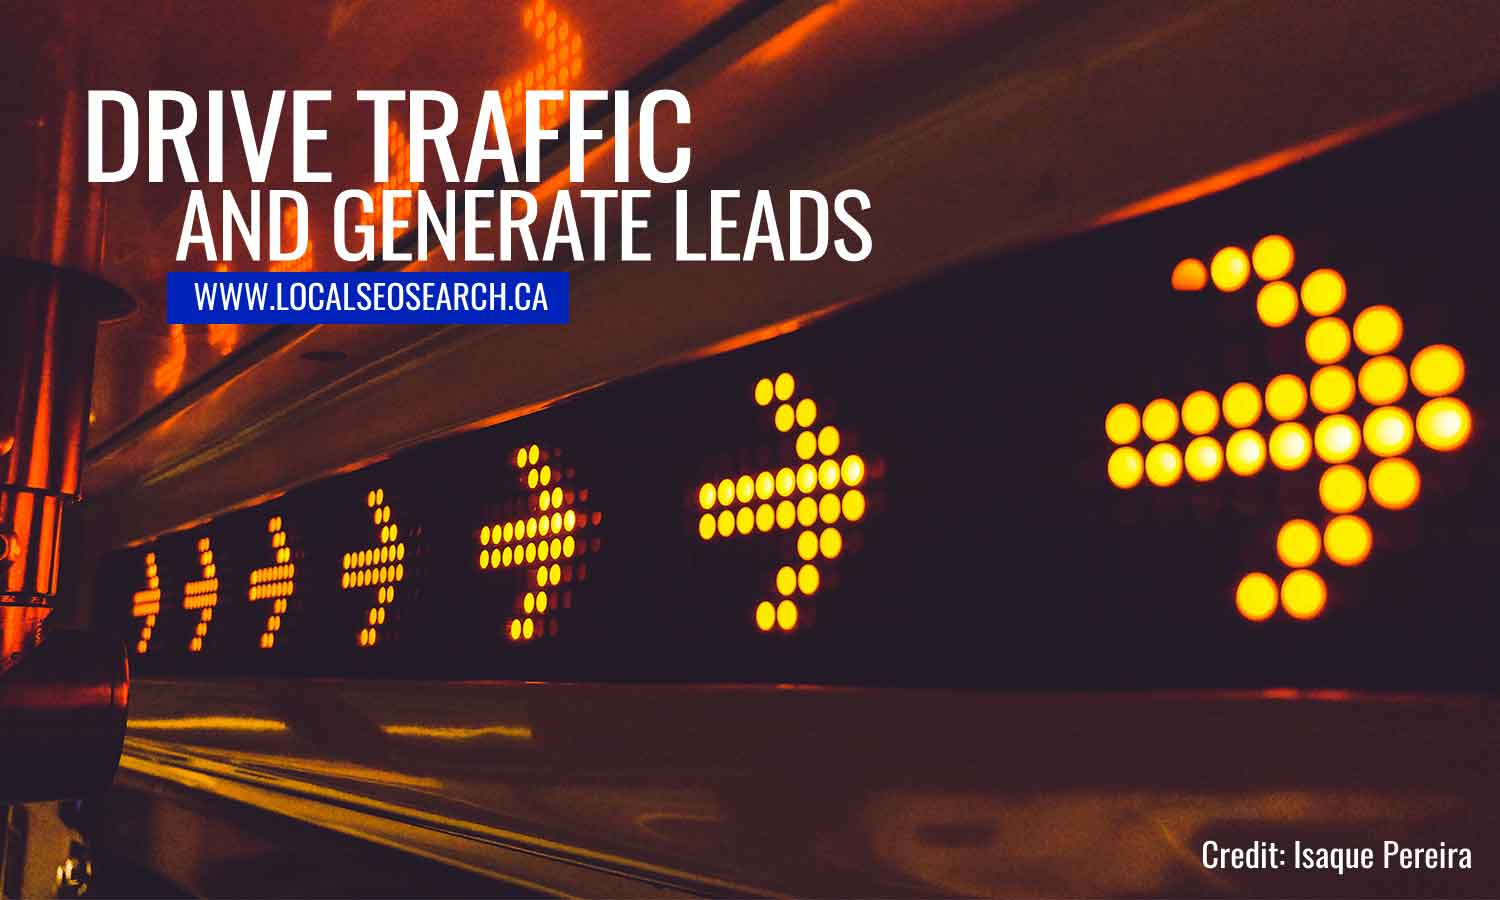 Drive traffic and generate leads